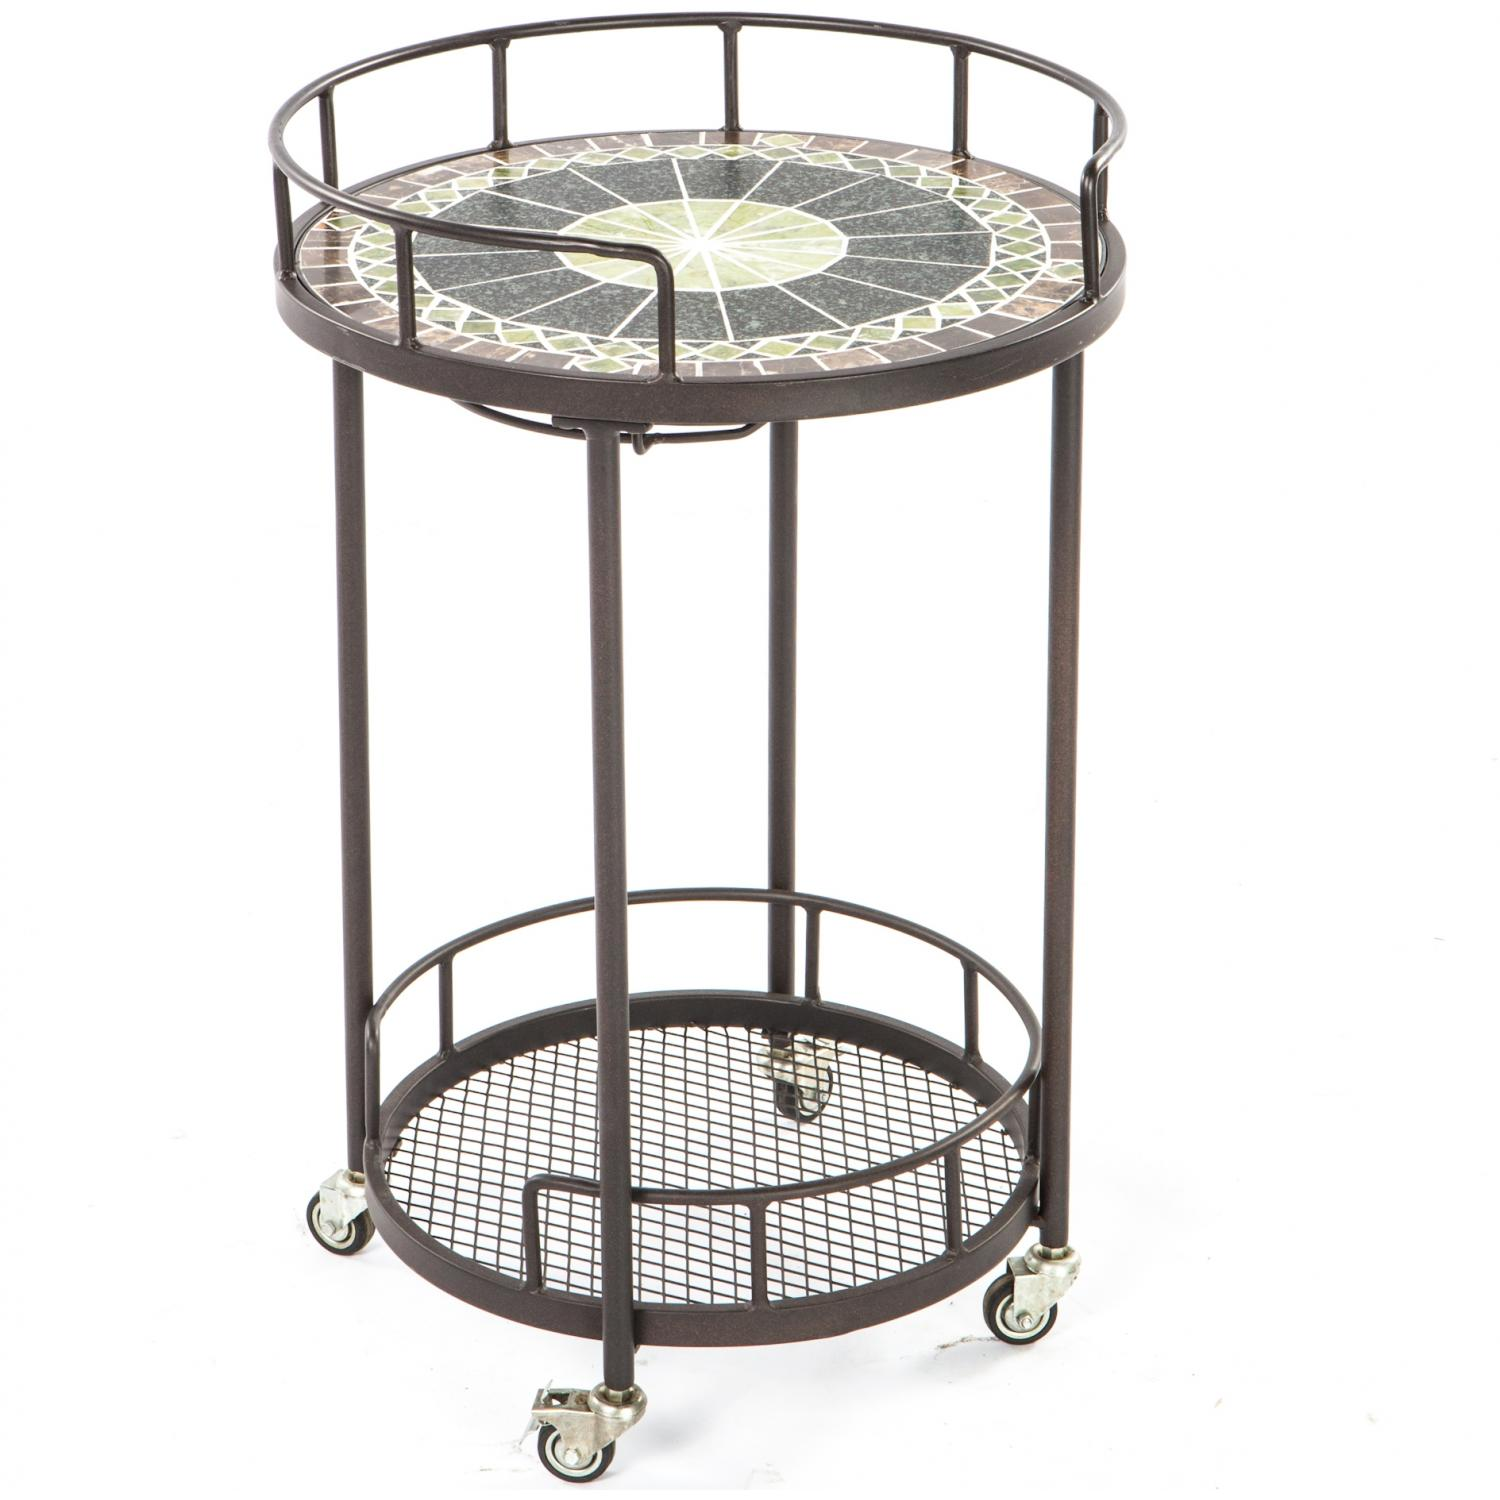 Alfresco Home Ponte Mosaic Outdoor Serving Cart at Sears.com